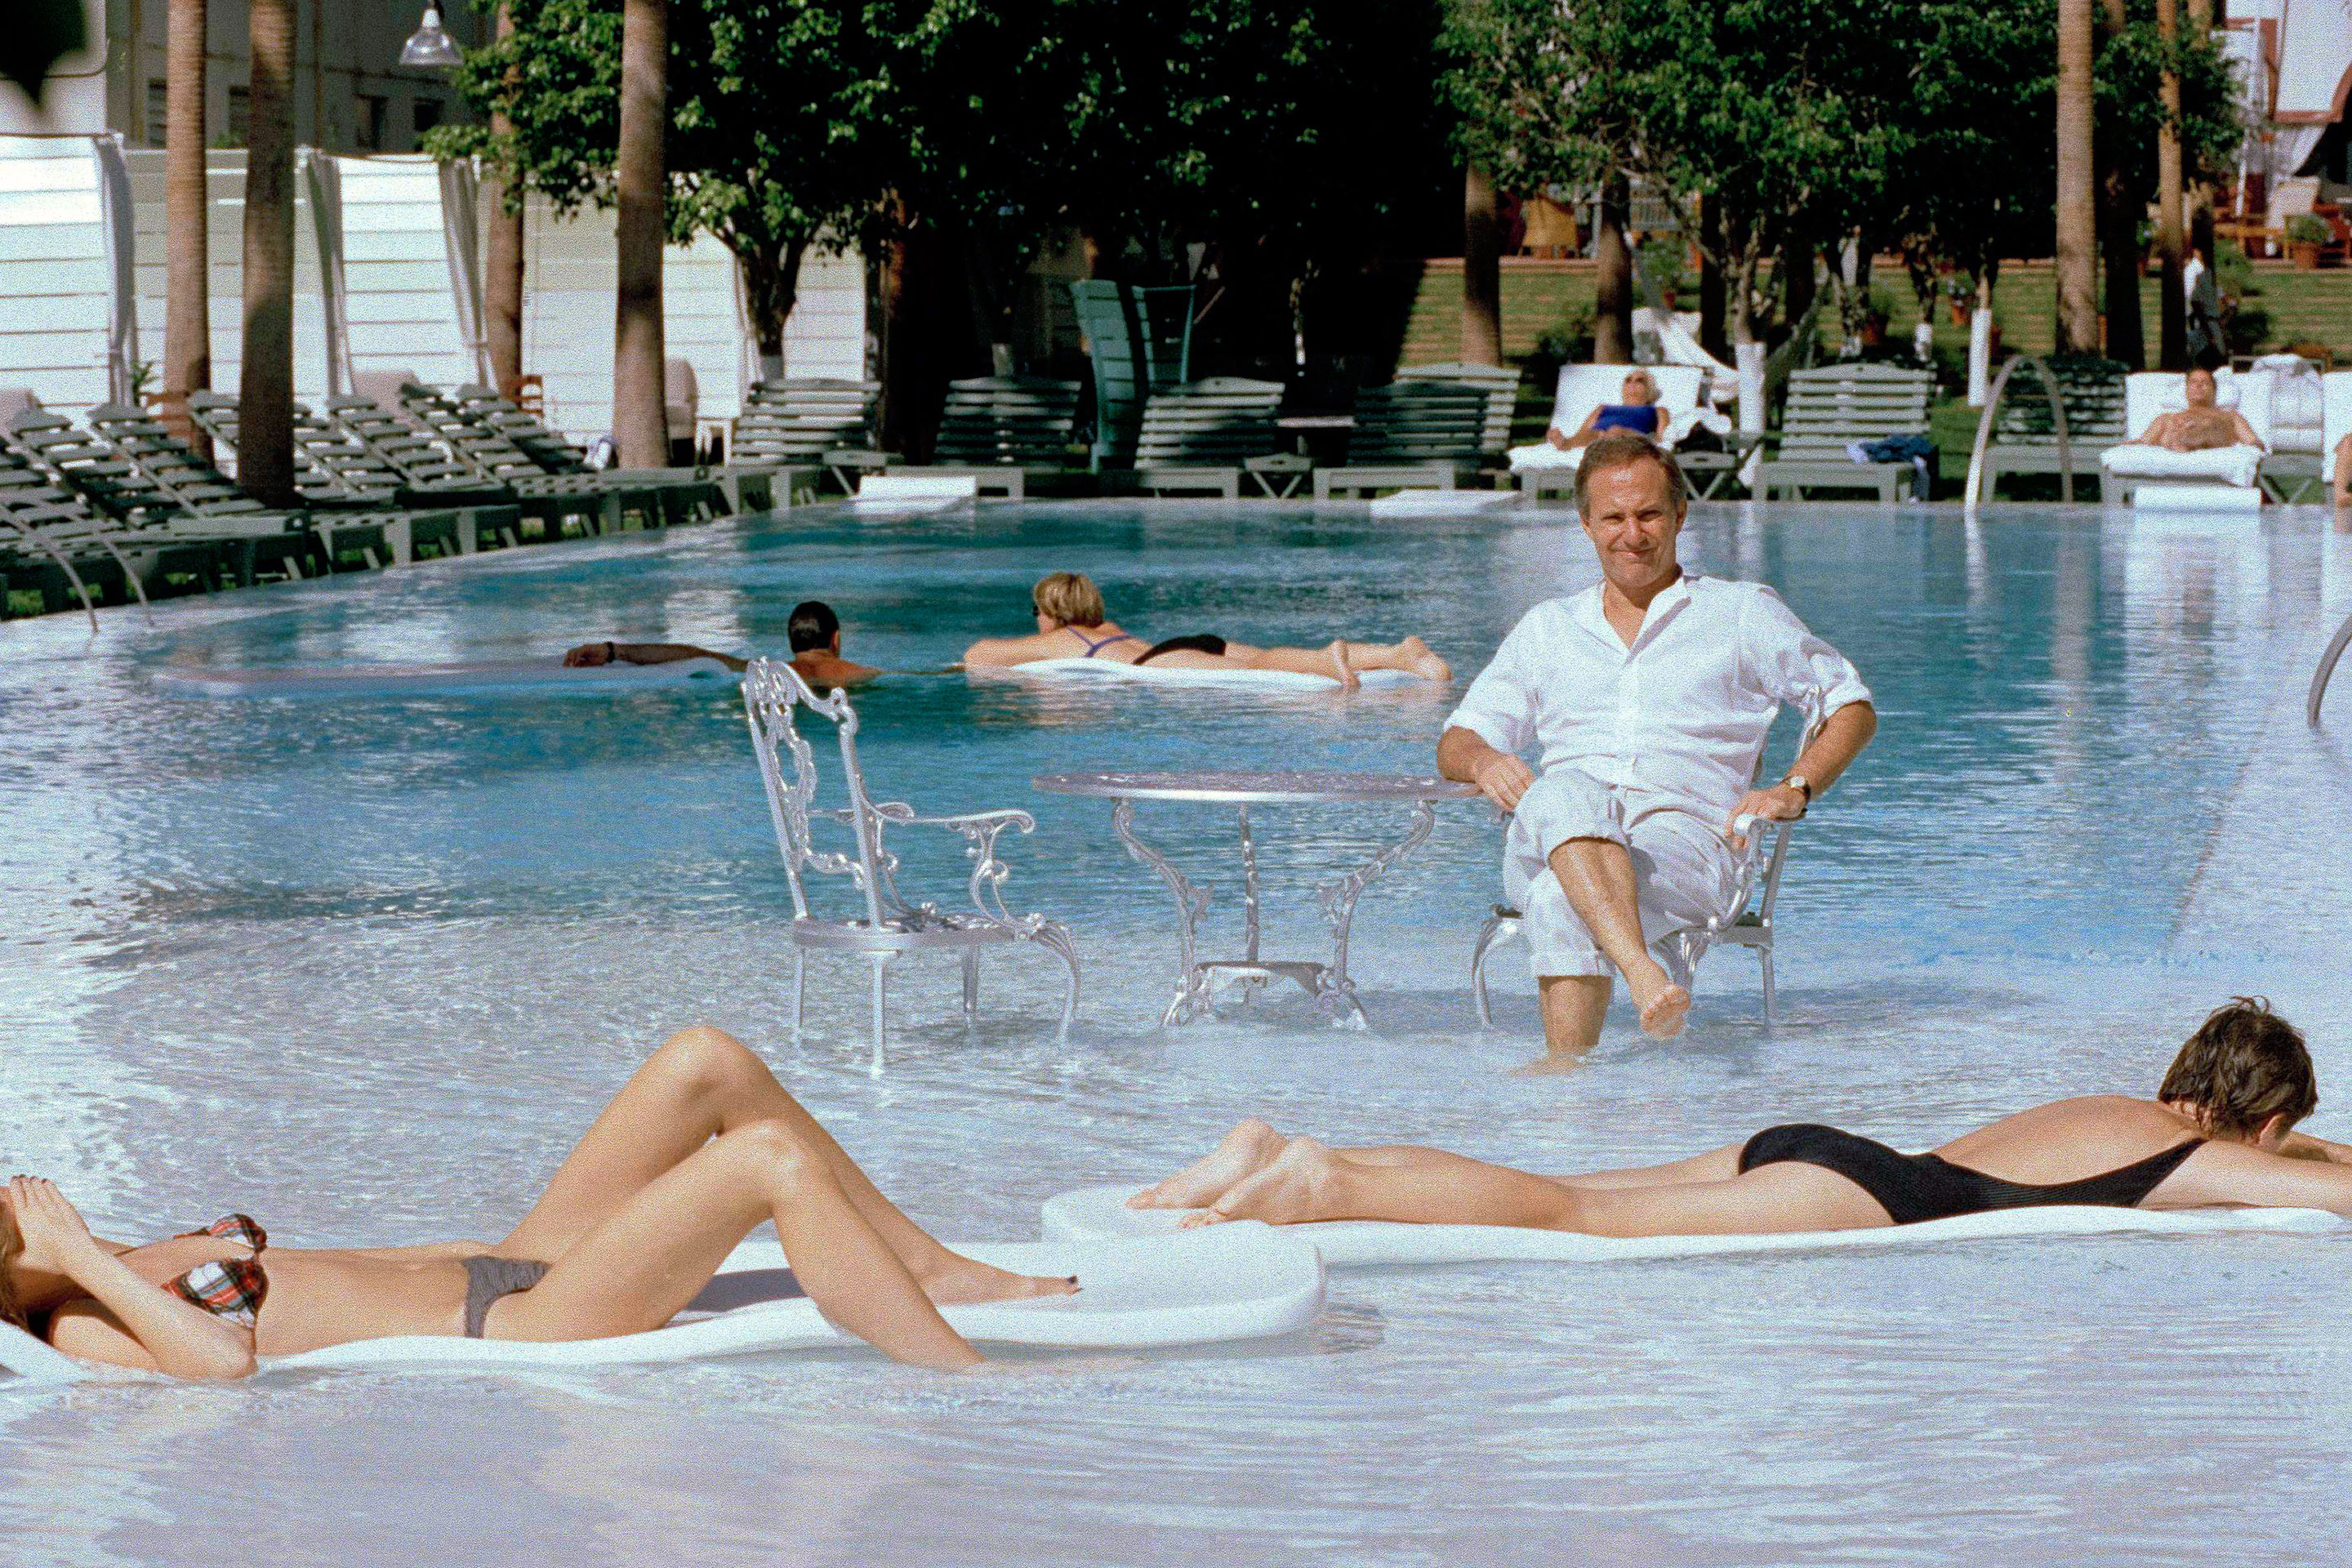 Ian Schrager and guests at Delano South Beach, 1995.